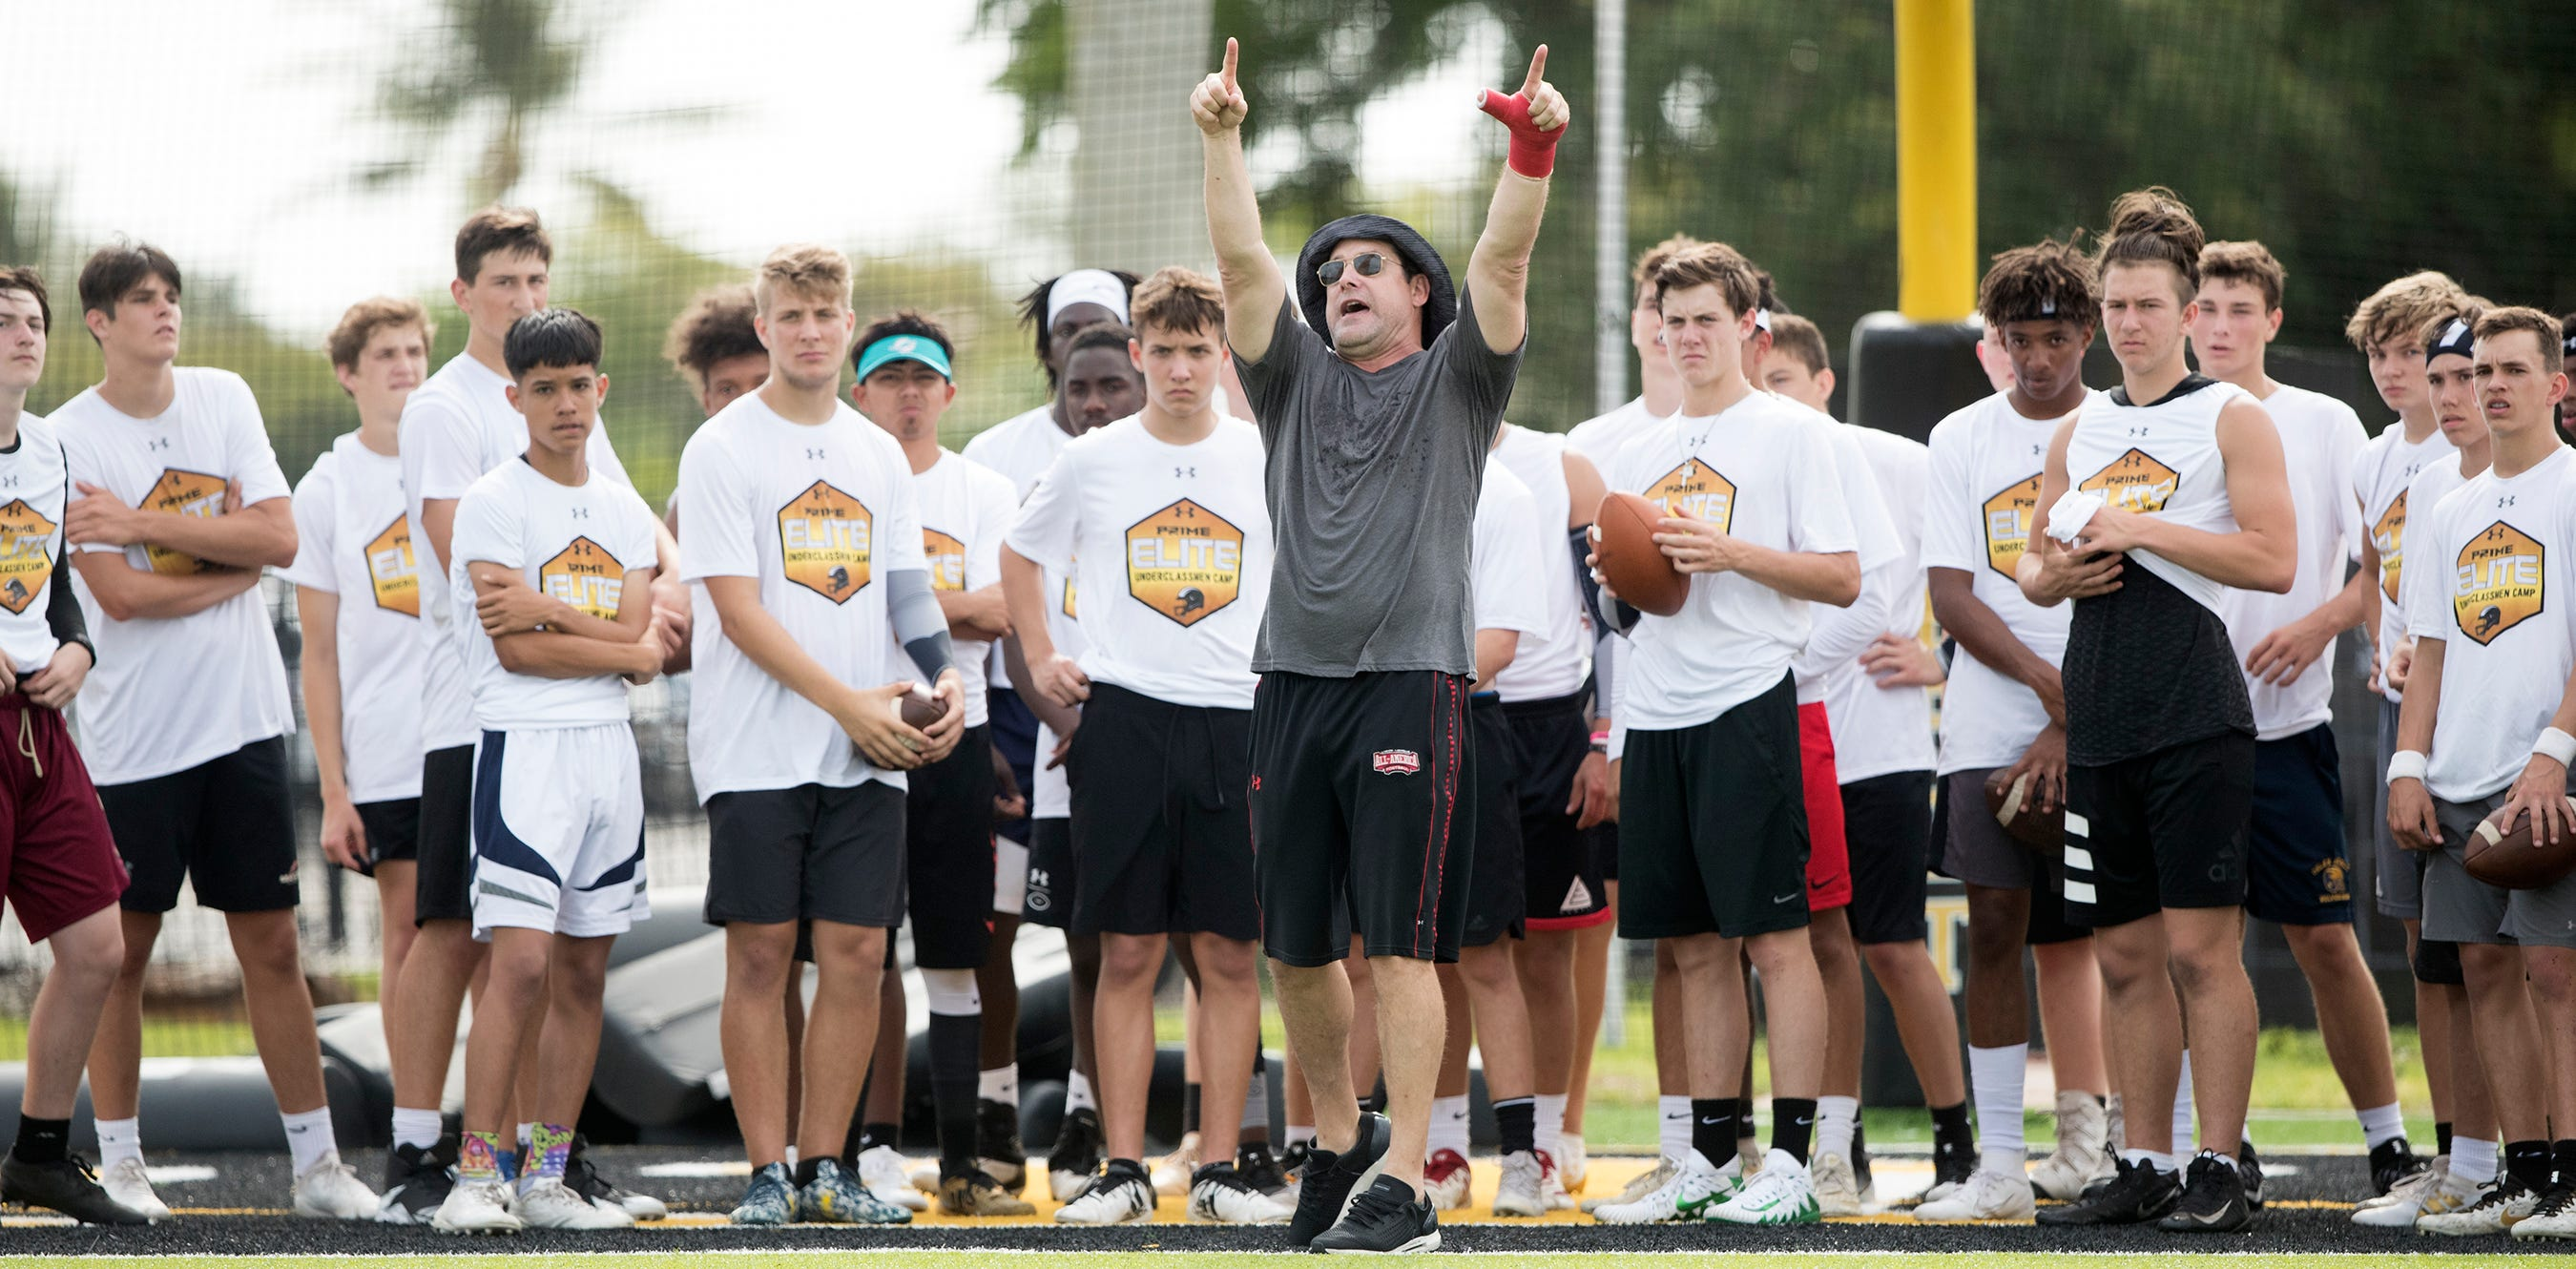 Tom Luginbill, center, ESPN National Recruiting Director, helps lead the Prime Elite Underclassmen Football Camp on Sunday at Bishop Verot in Fort Myers. More than 700 middle and high school athletes attended the camp that was put on by Under Armour and Deion Sanders.